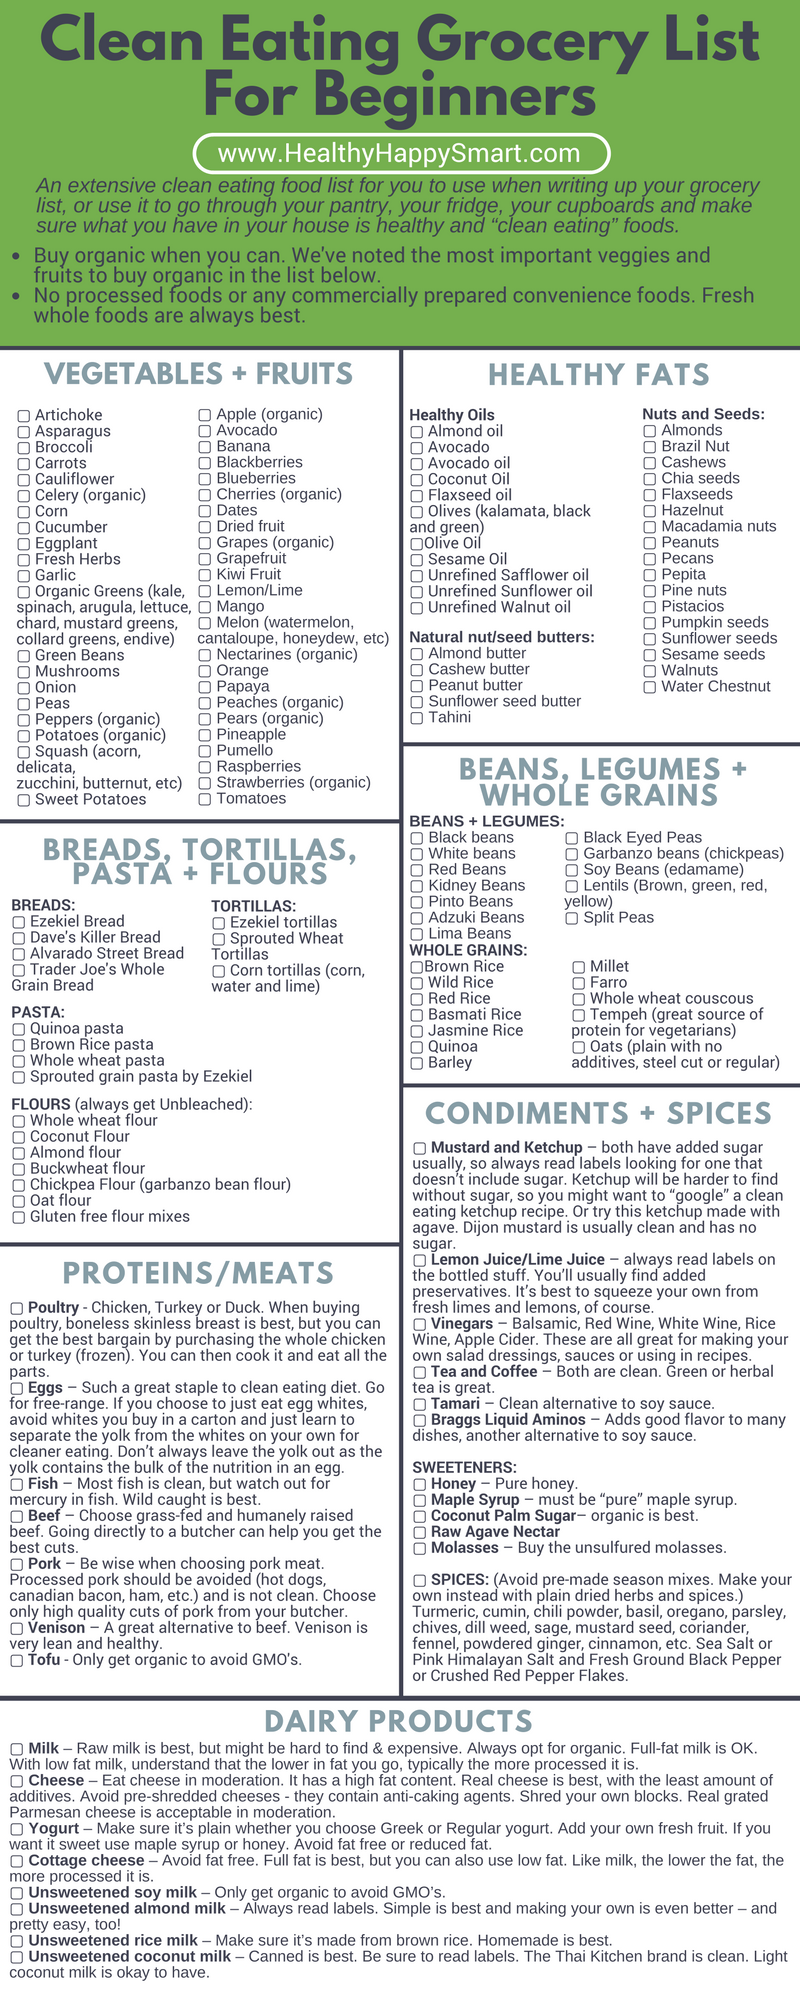 Clean Eating Grocery List Healthy Food List Hhs Clean Eating Grocery List Healthy Grocery List Healthy Food List